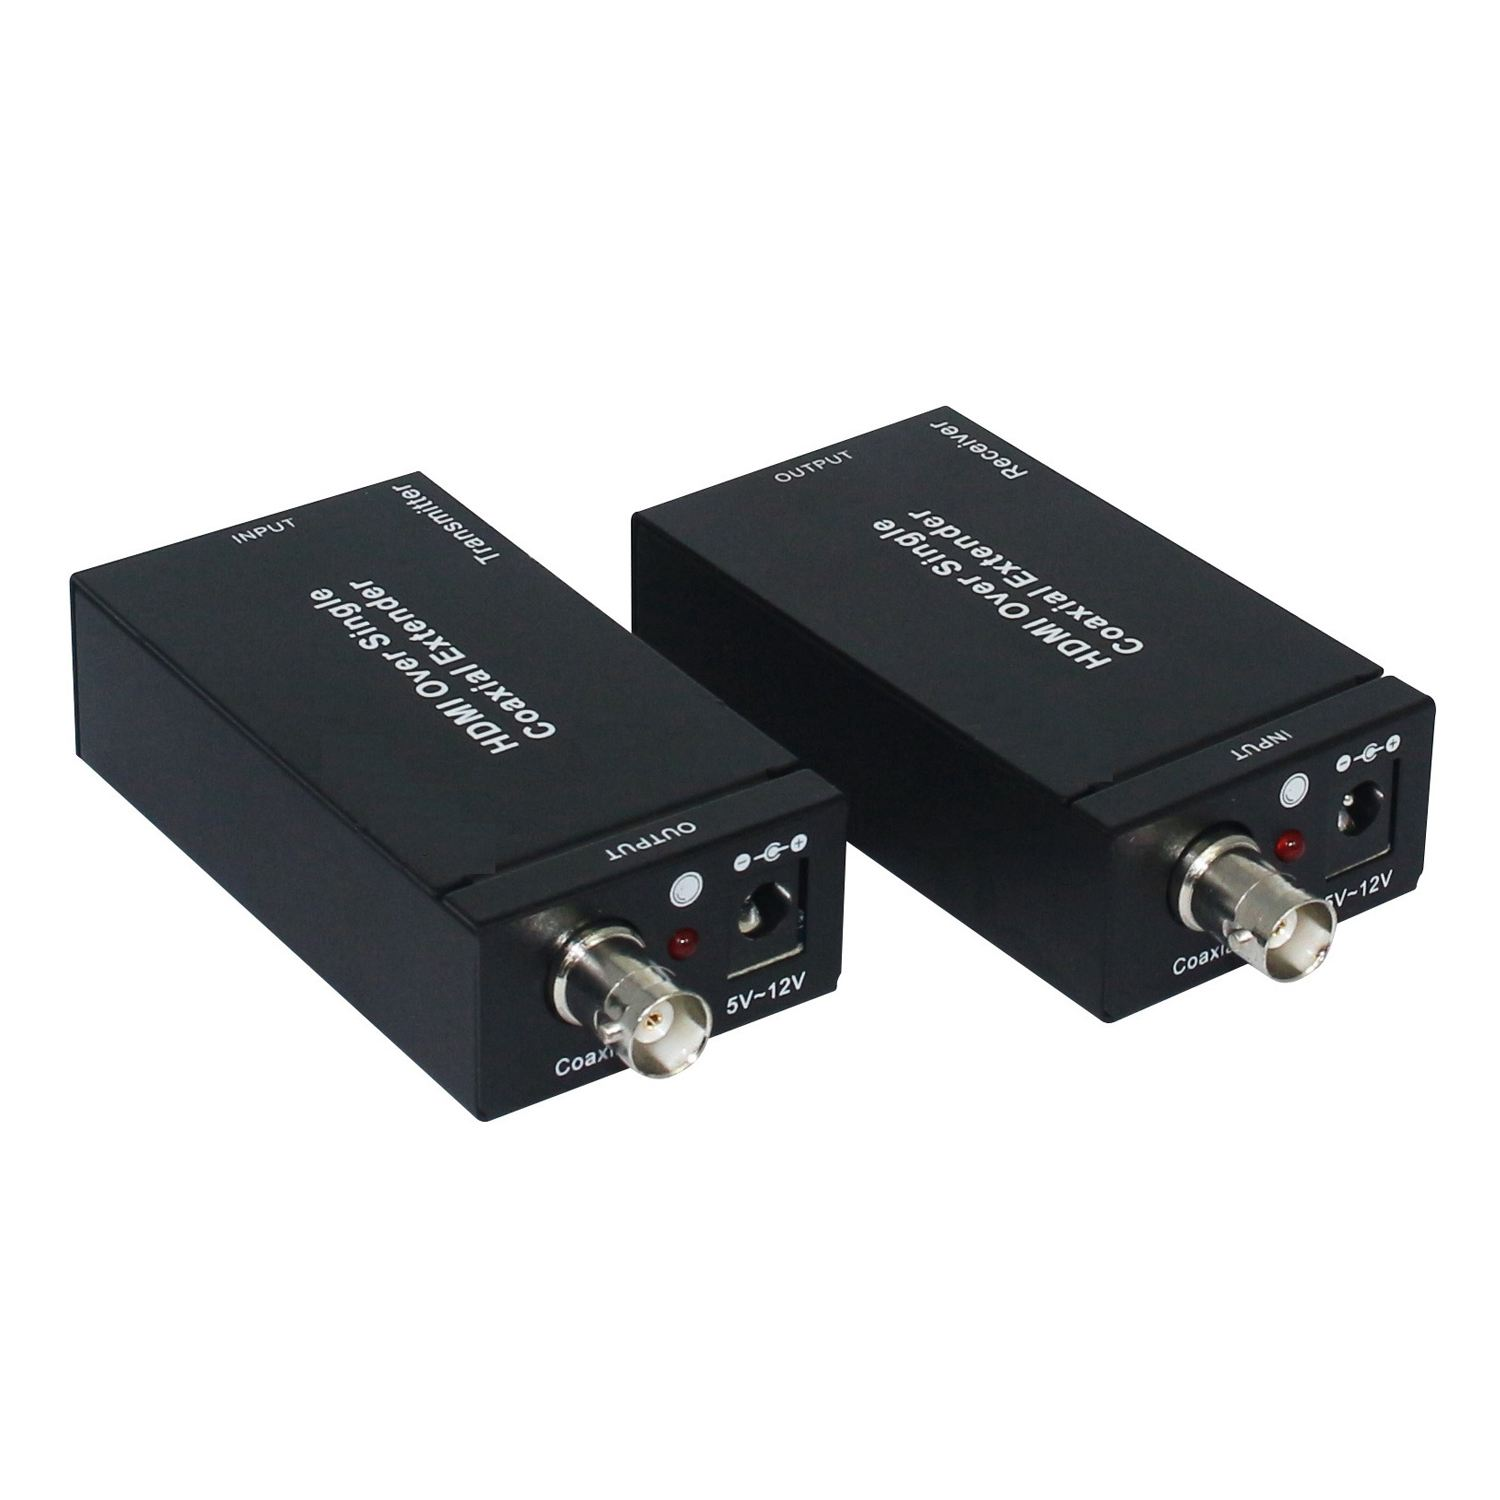 HDMI + IR over single 75ohm RG-6U Coax Cable Extender Balun Sender Receiver BNC 80 channels hdmi to dvb t modulator hdmi extender over coaxial